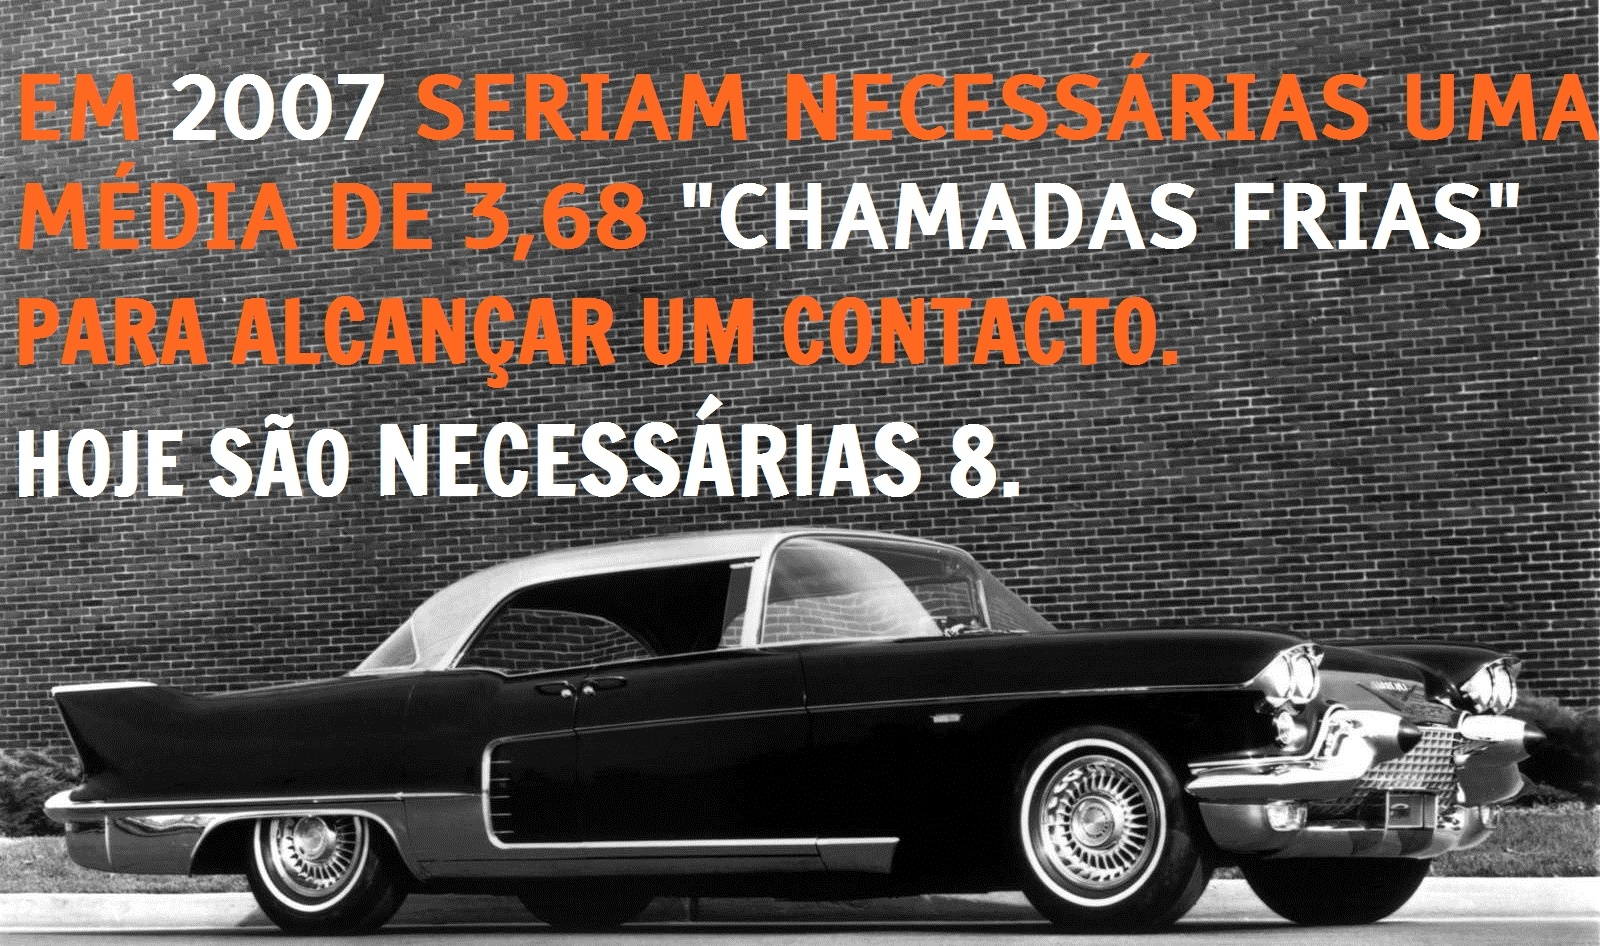 1957-old-cadillac-eldorado-02-1-car-photos